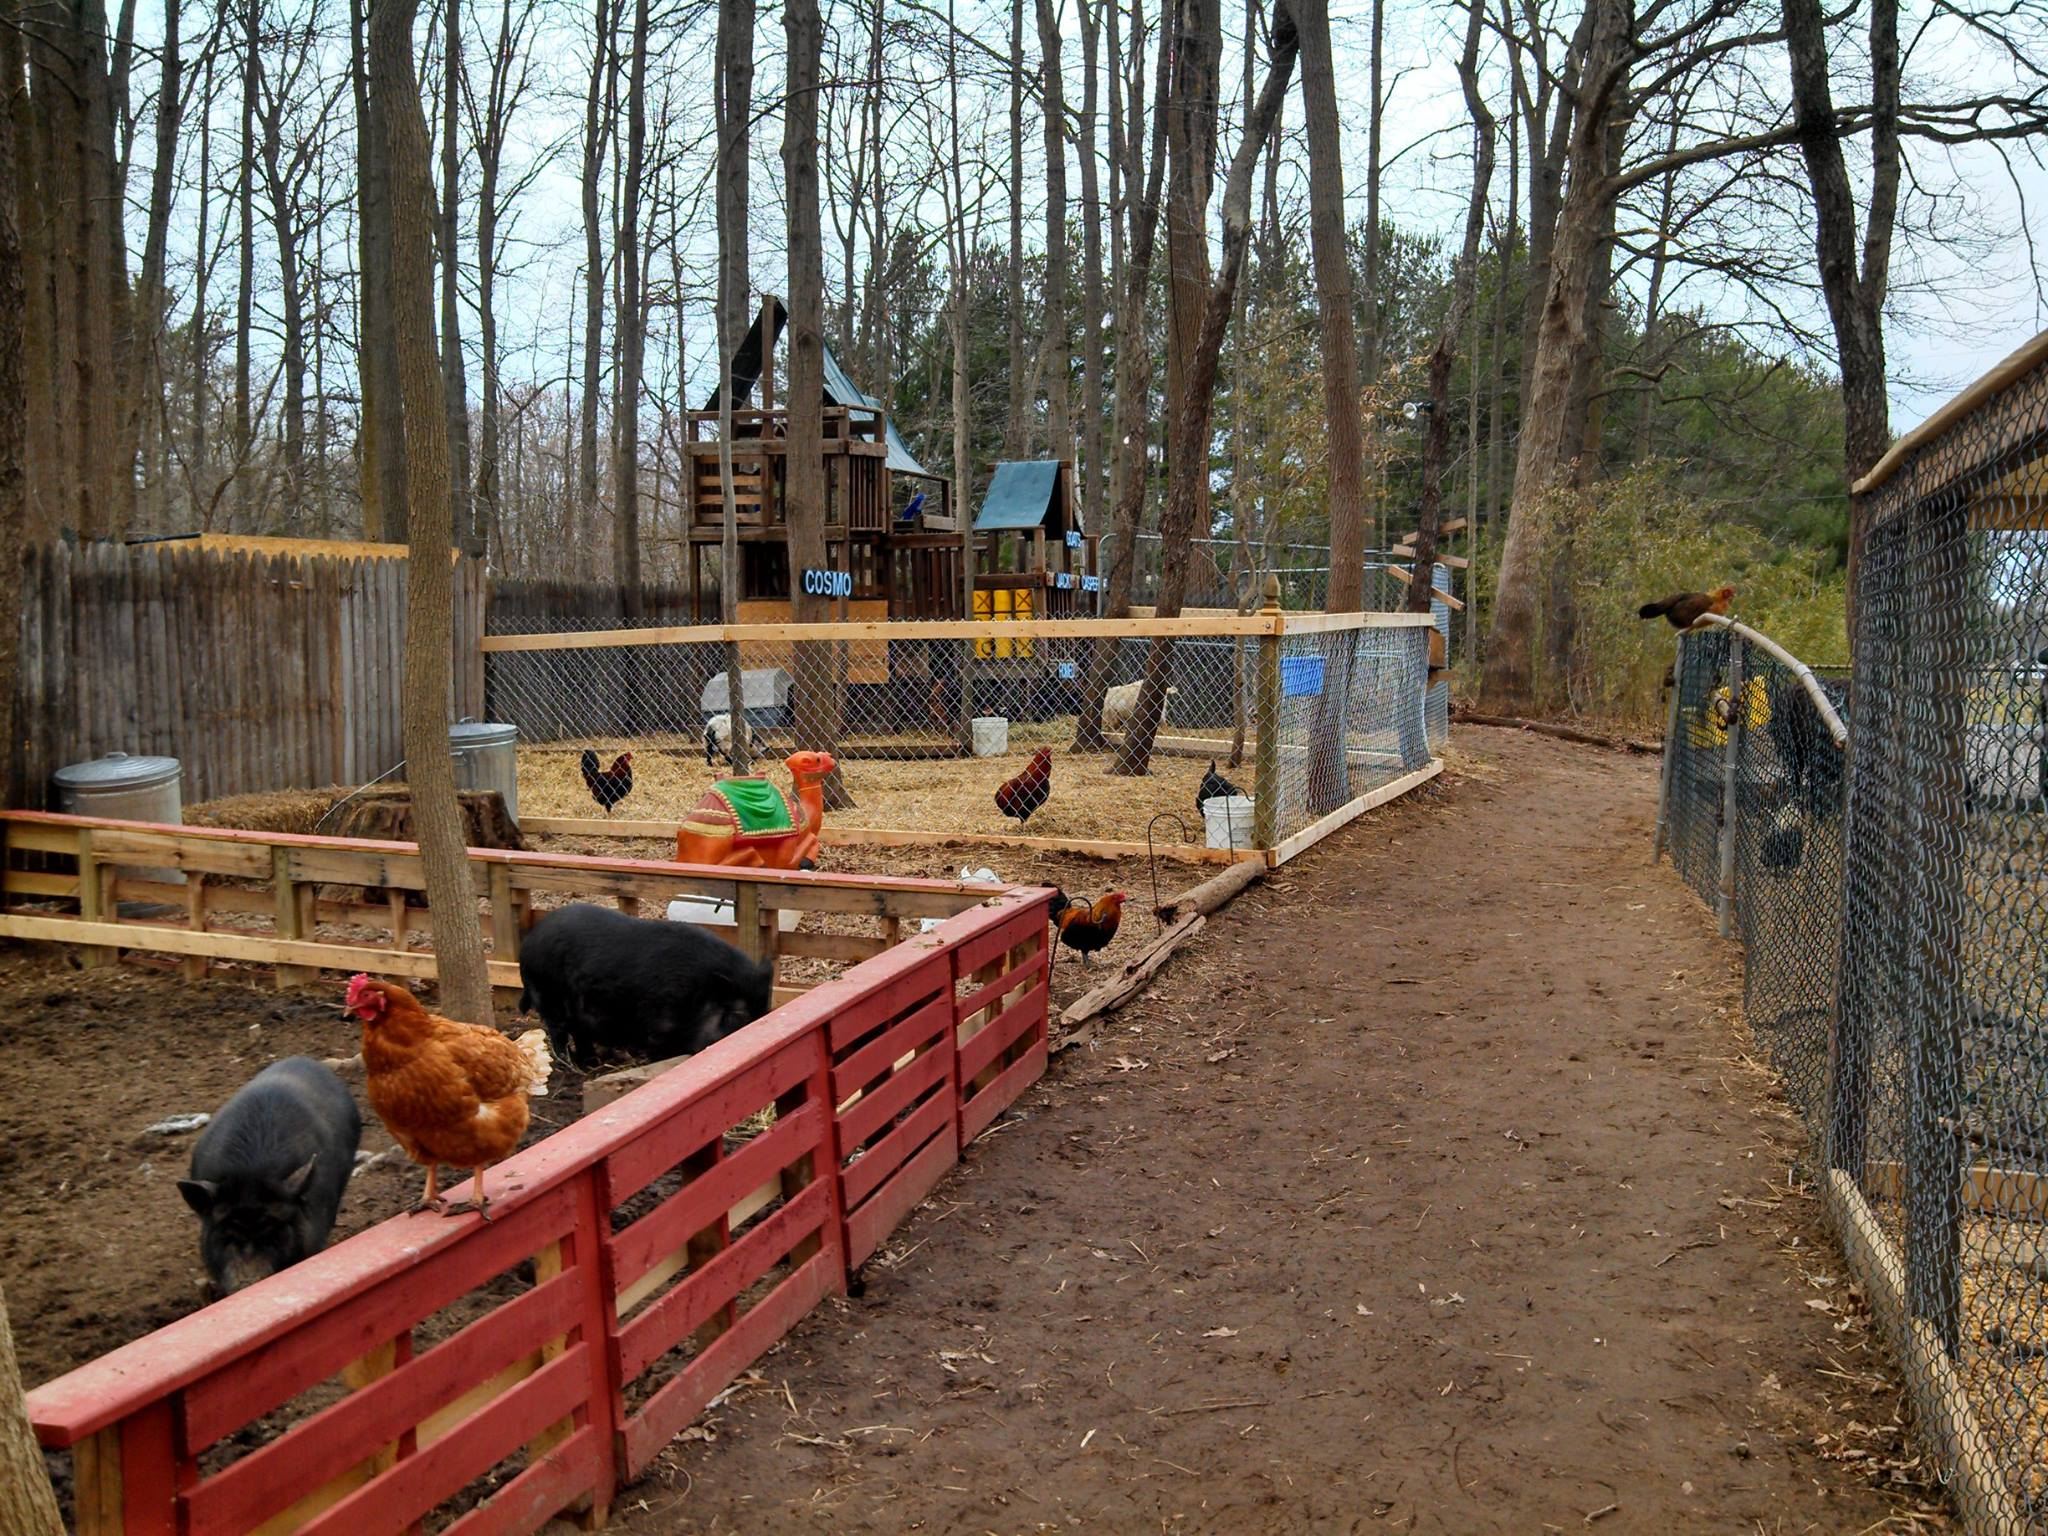 A Wildlife Park In Delaware is great For a family day trip